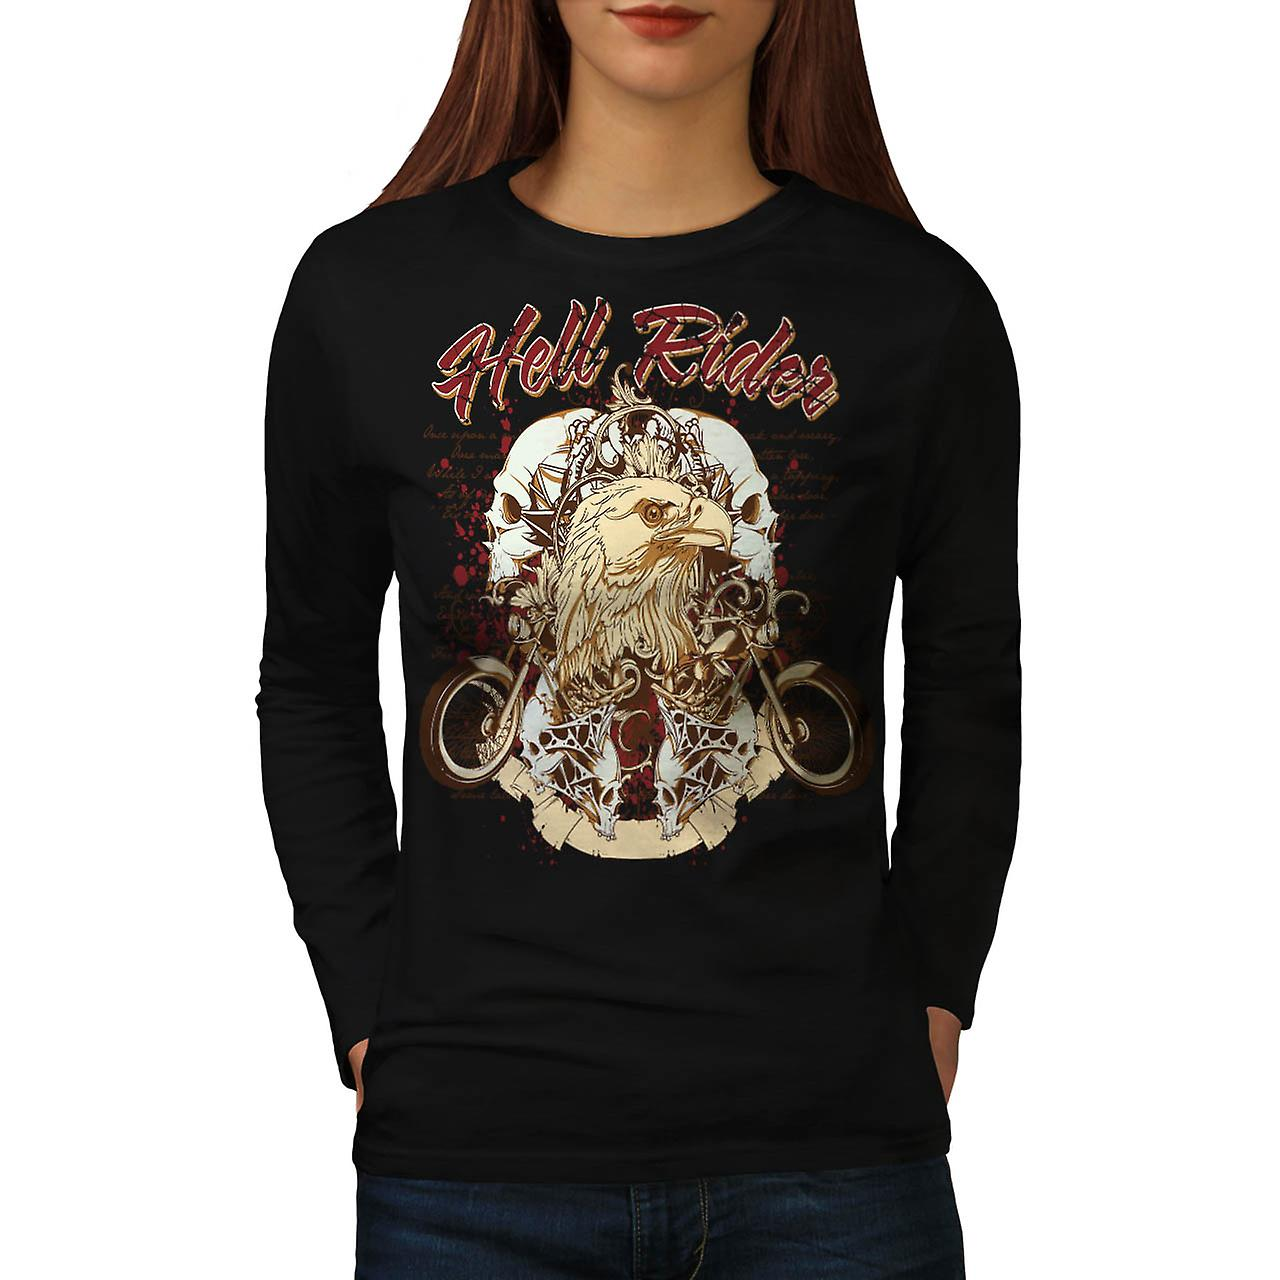 Hell Rider Biker Life Eagle Bike Women Black Long Sleeve T-shirt | Wellcoda